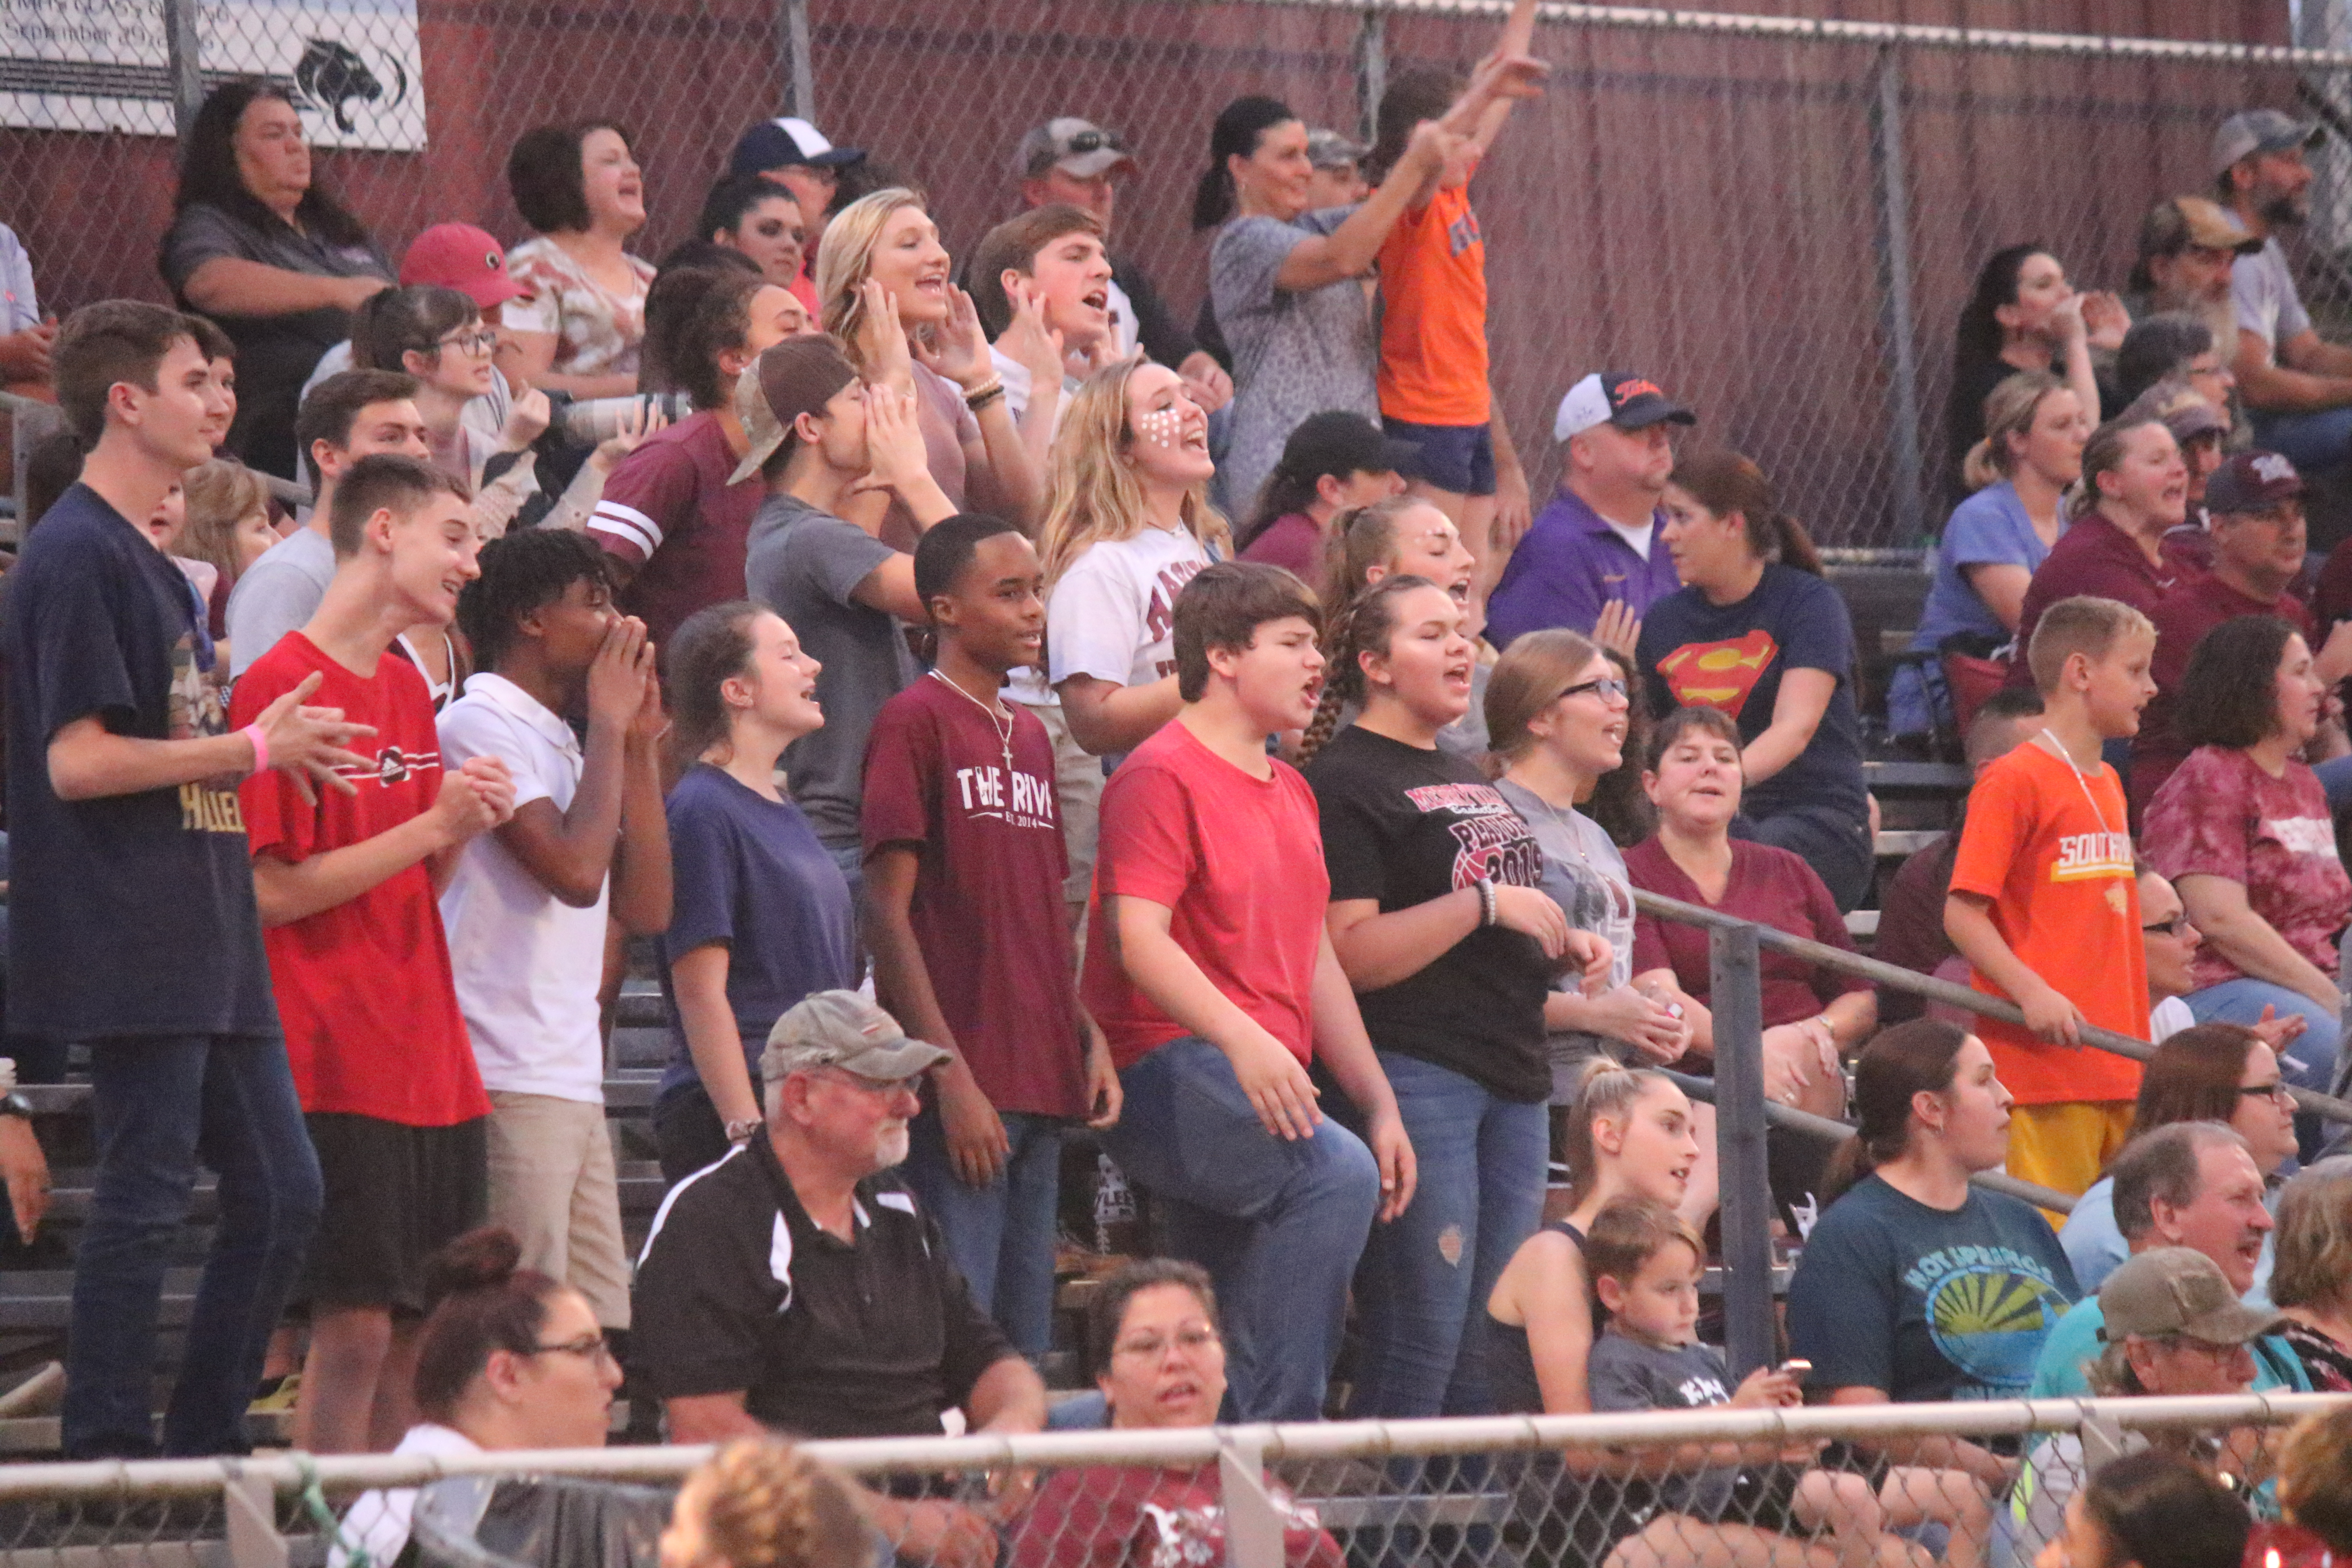 Student Section at Football Game